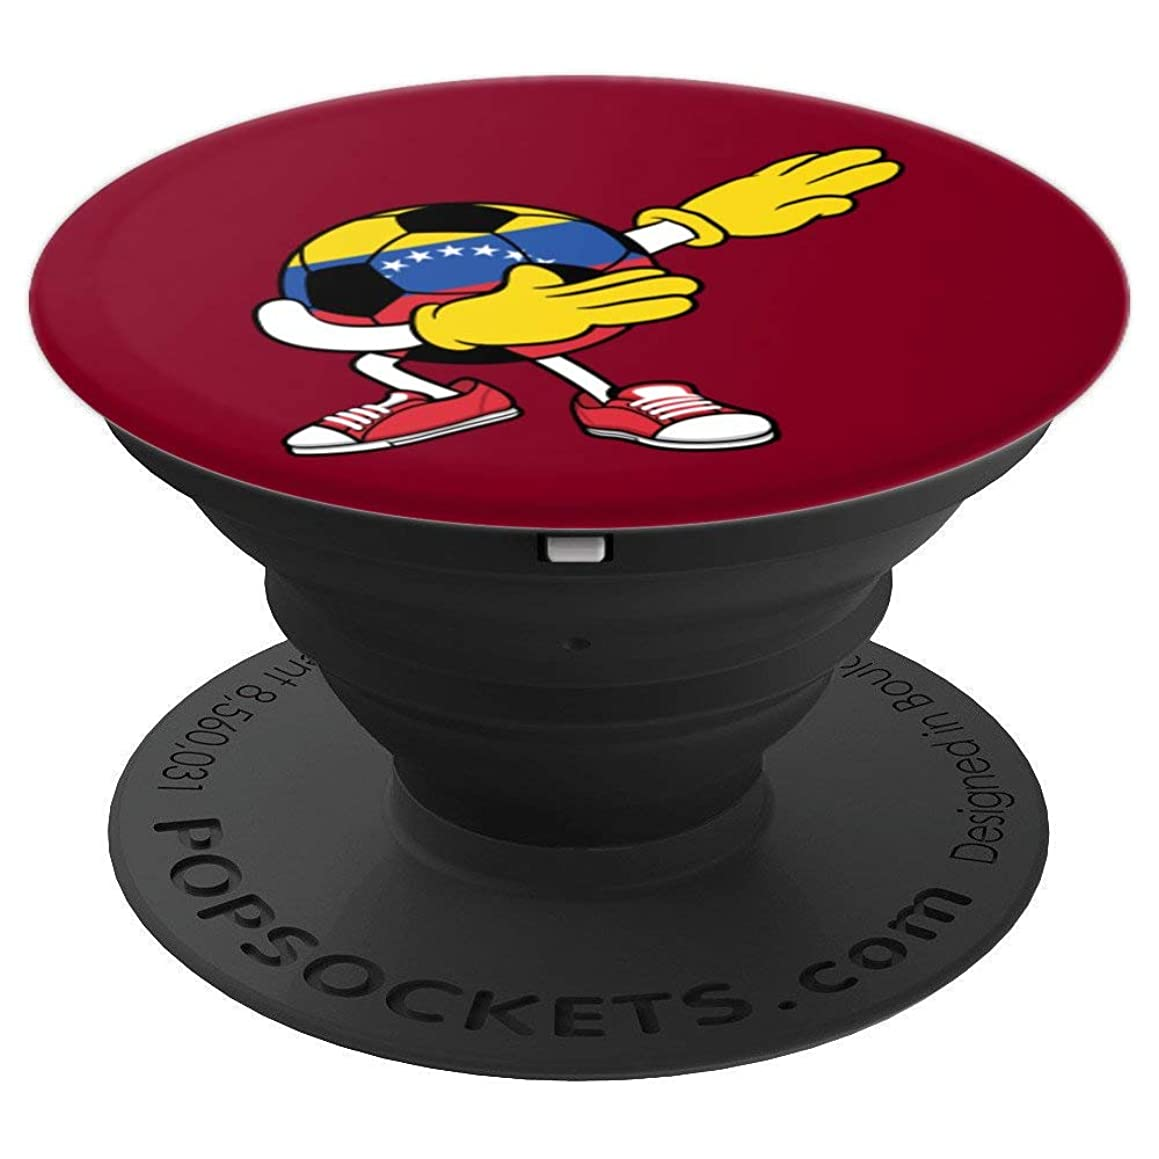 Dabbing Soccer Venezuela Jersey Art - Venezuelan Football - PopSockets Grip and Stand for Phones and Tablets